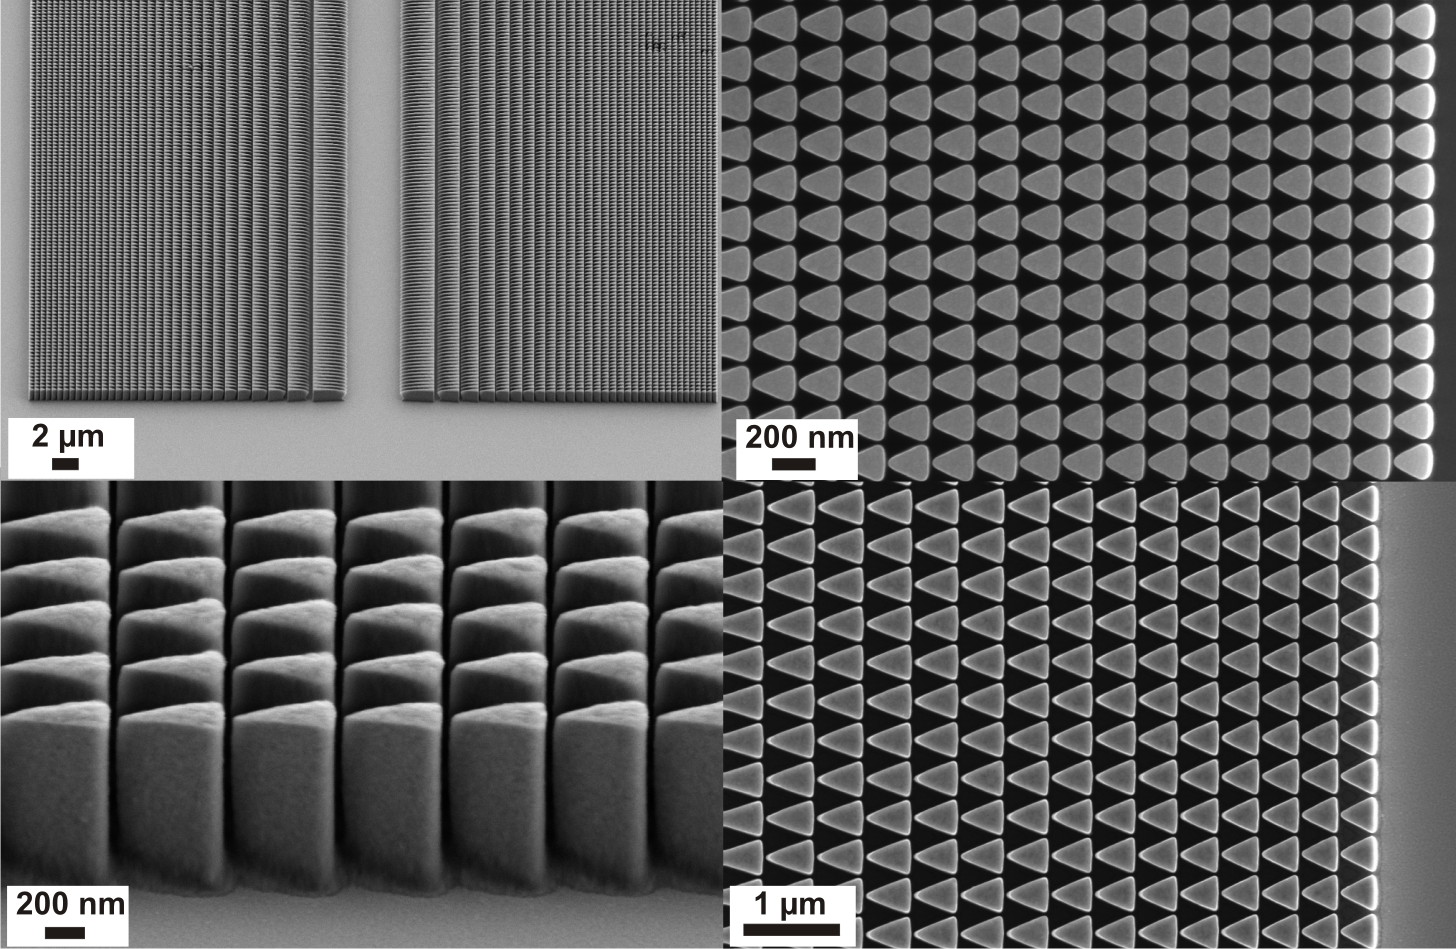 Scanning electron microscope images of nickel lens structures designed for blazed operation in tilted geometry.